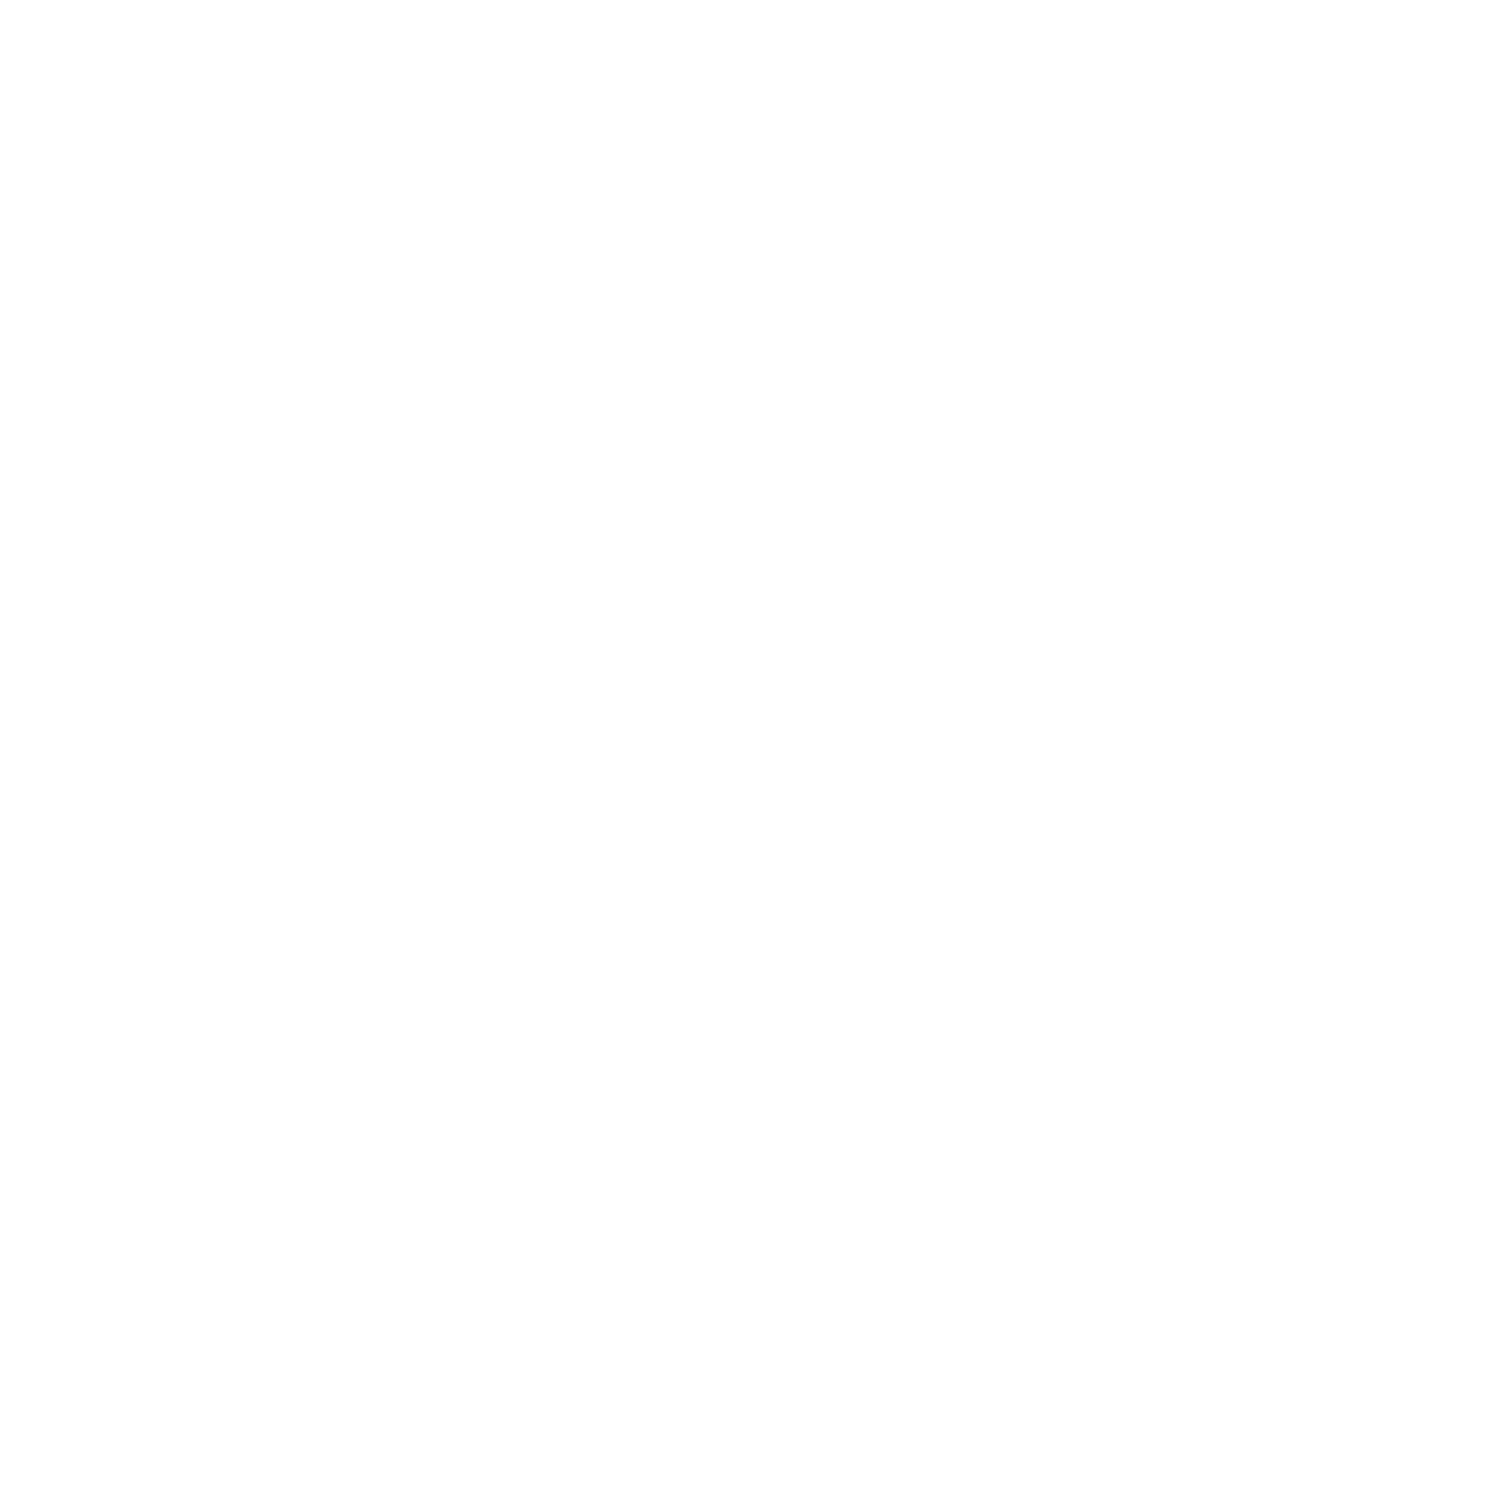 WSF Productions